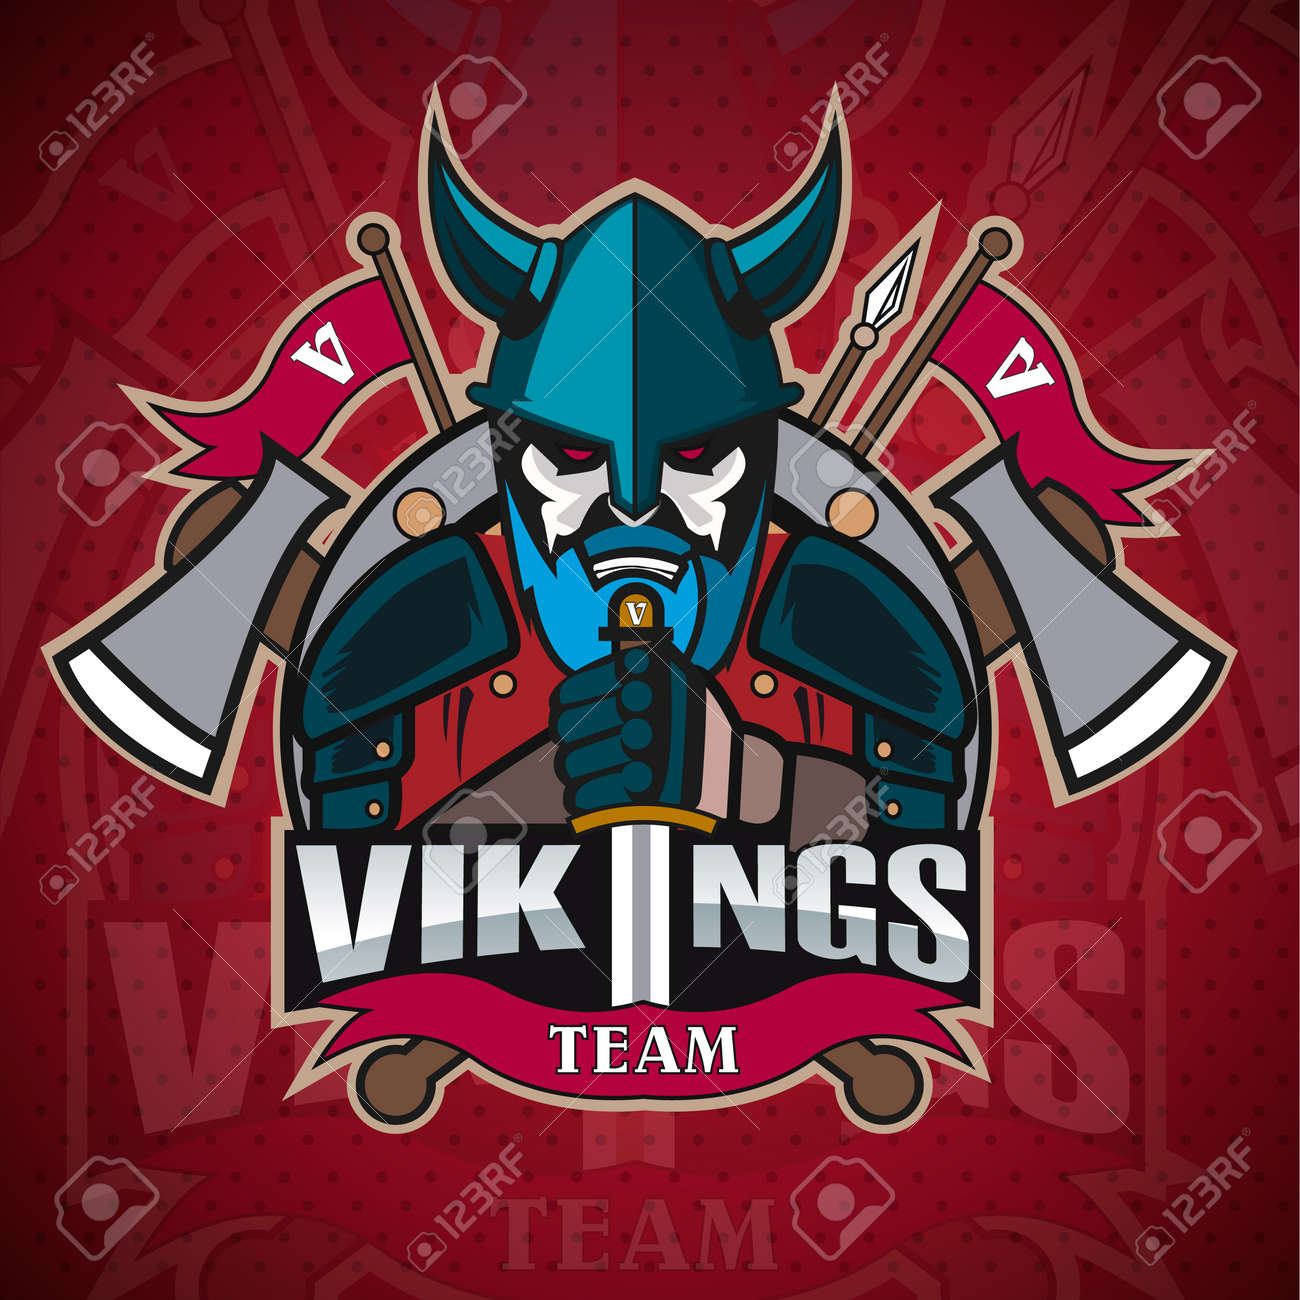 c0ff99a2 Vikings logo mascot for a team on a color background. Sport logo...